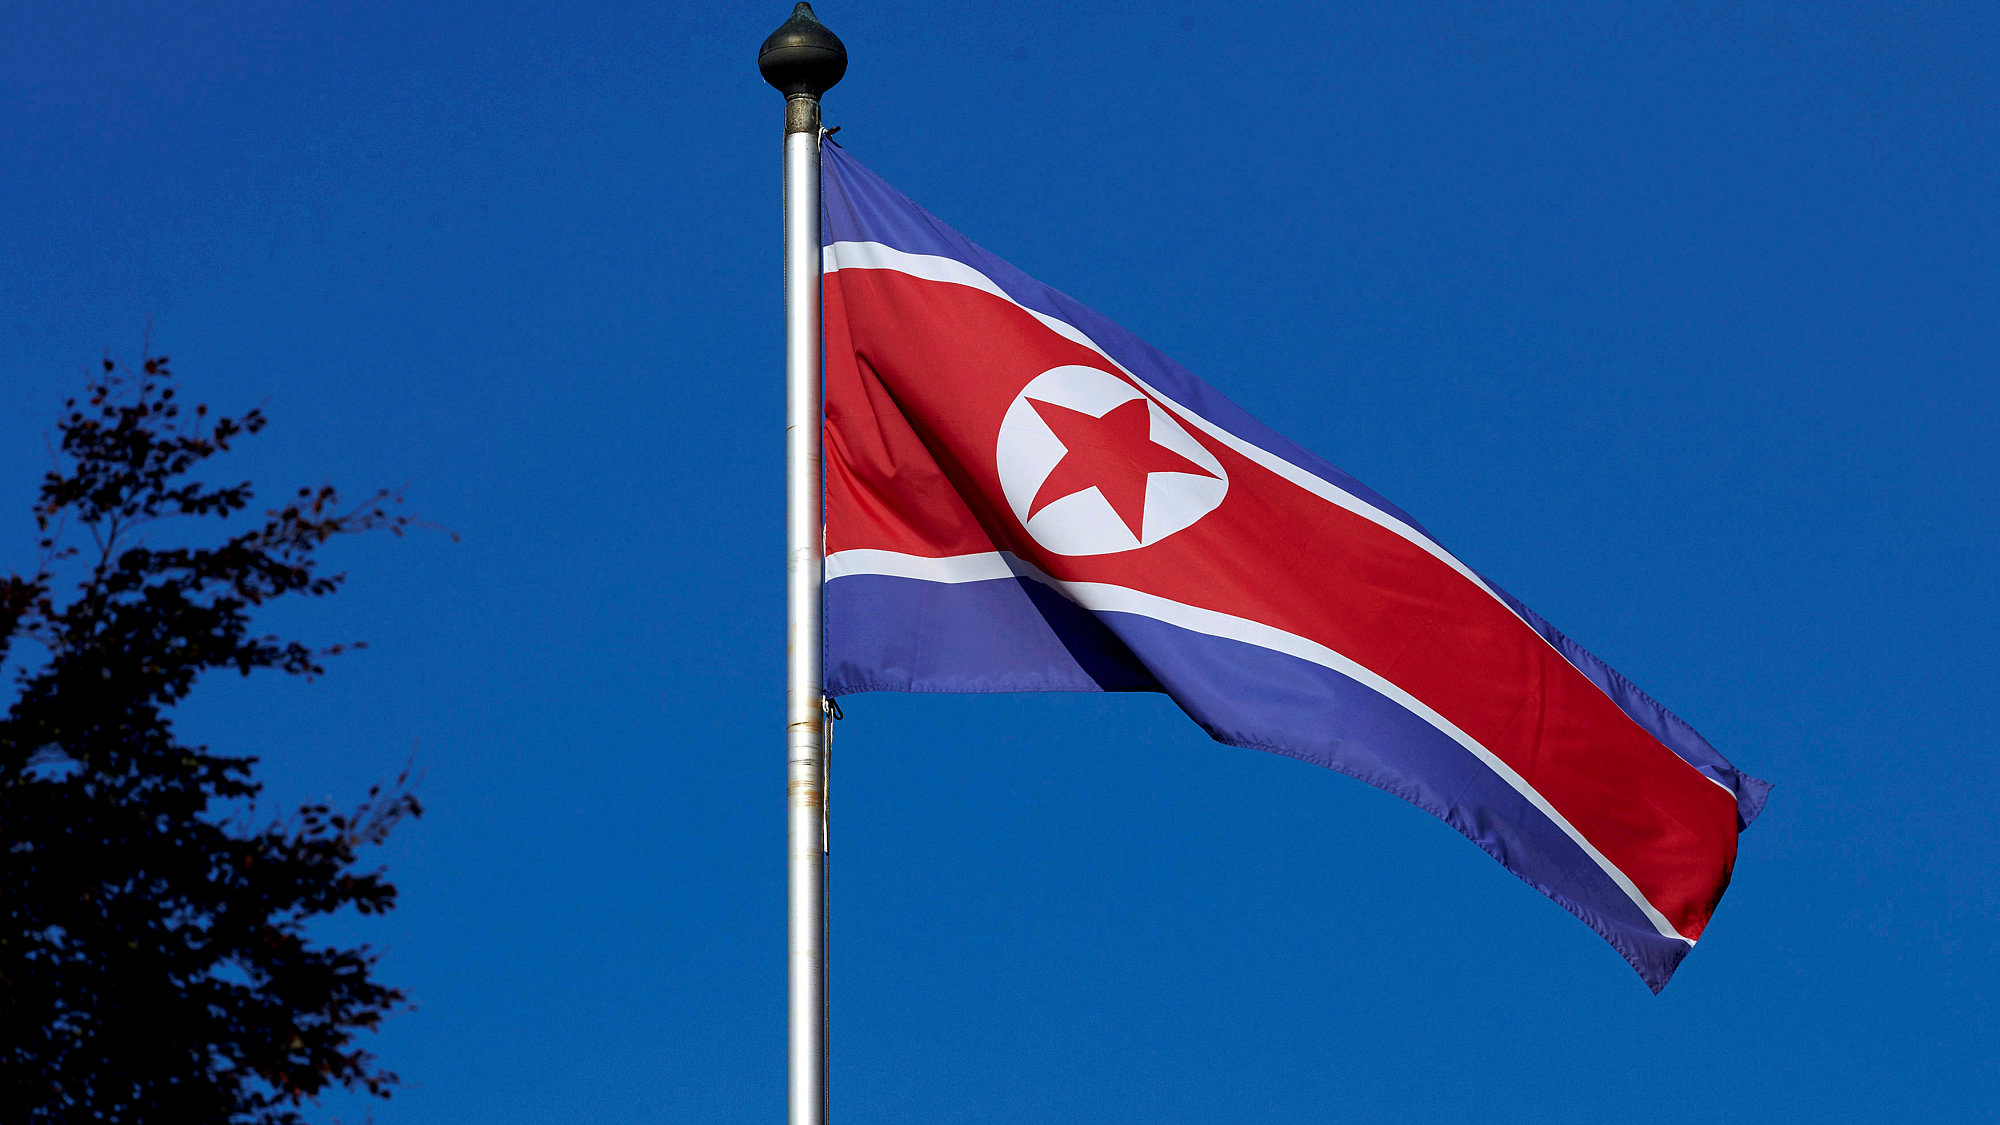 DPRK leader expresses thanks to Samjiyon builders: Report